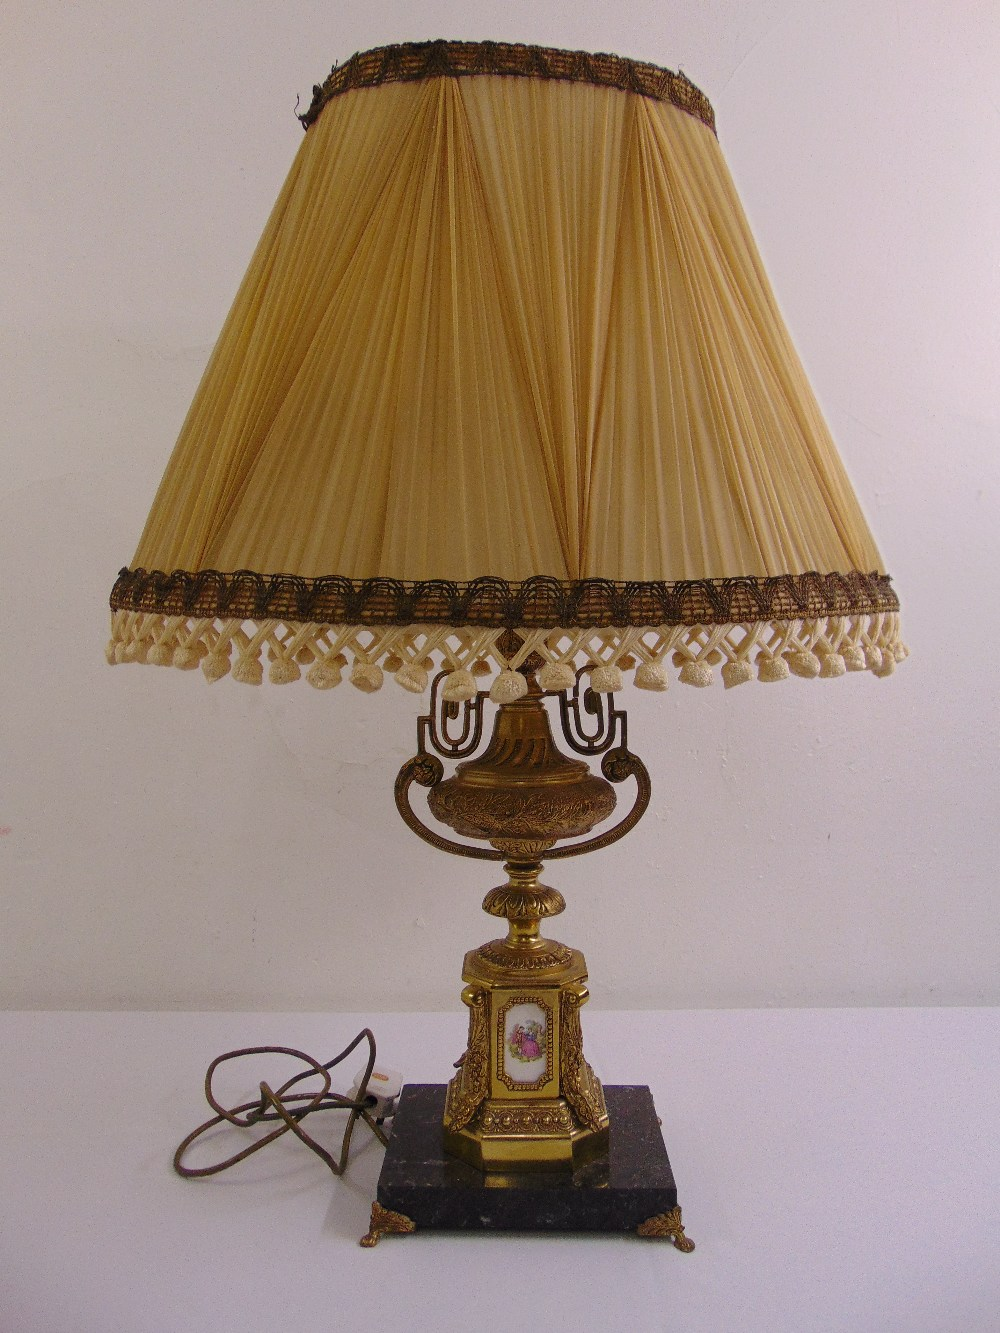 Lot 44 - A gilded metal table lamp on raised octagonal base with applied porcelain panels and silk shade